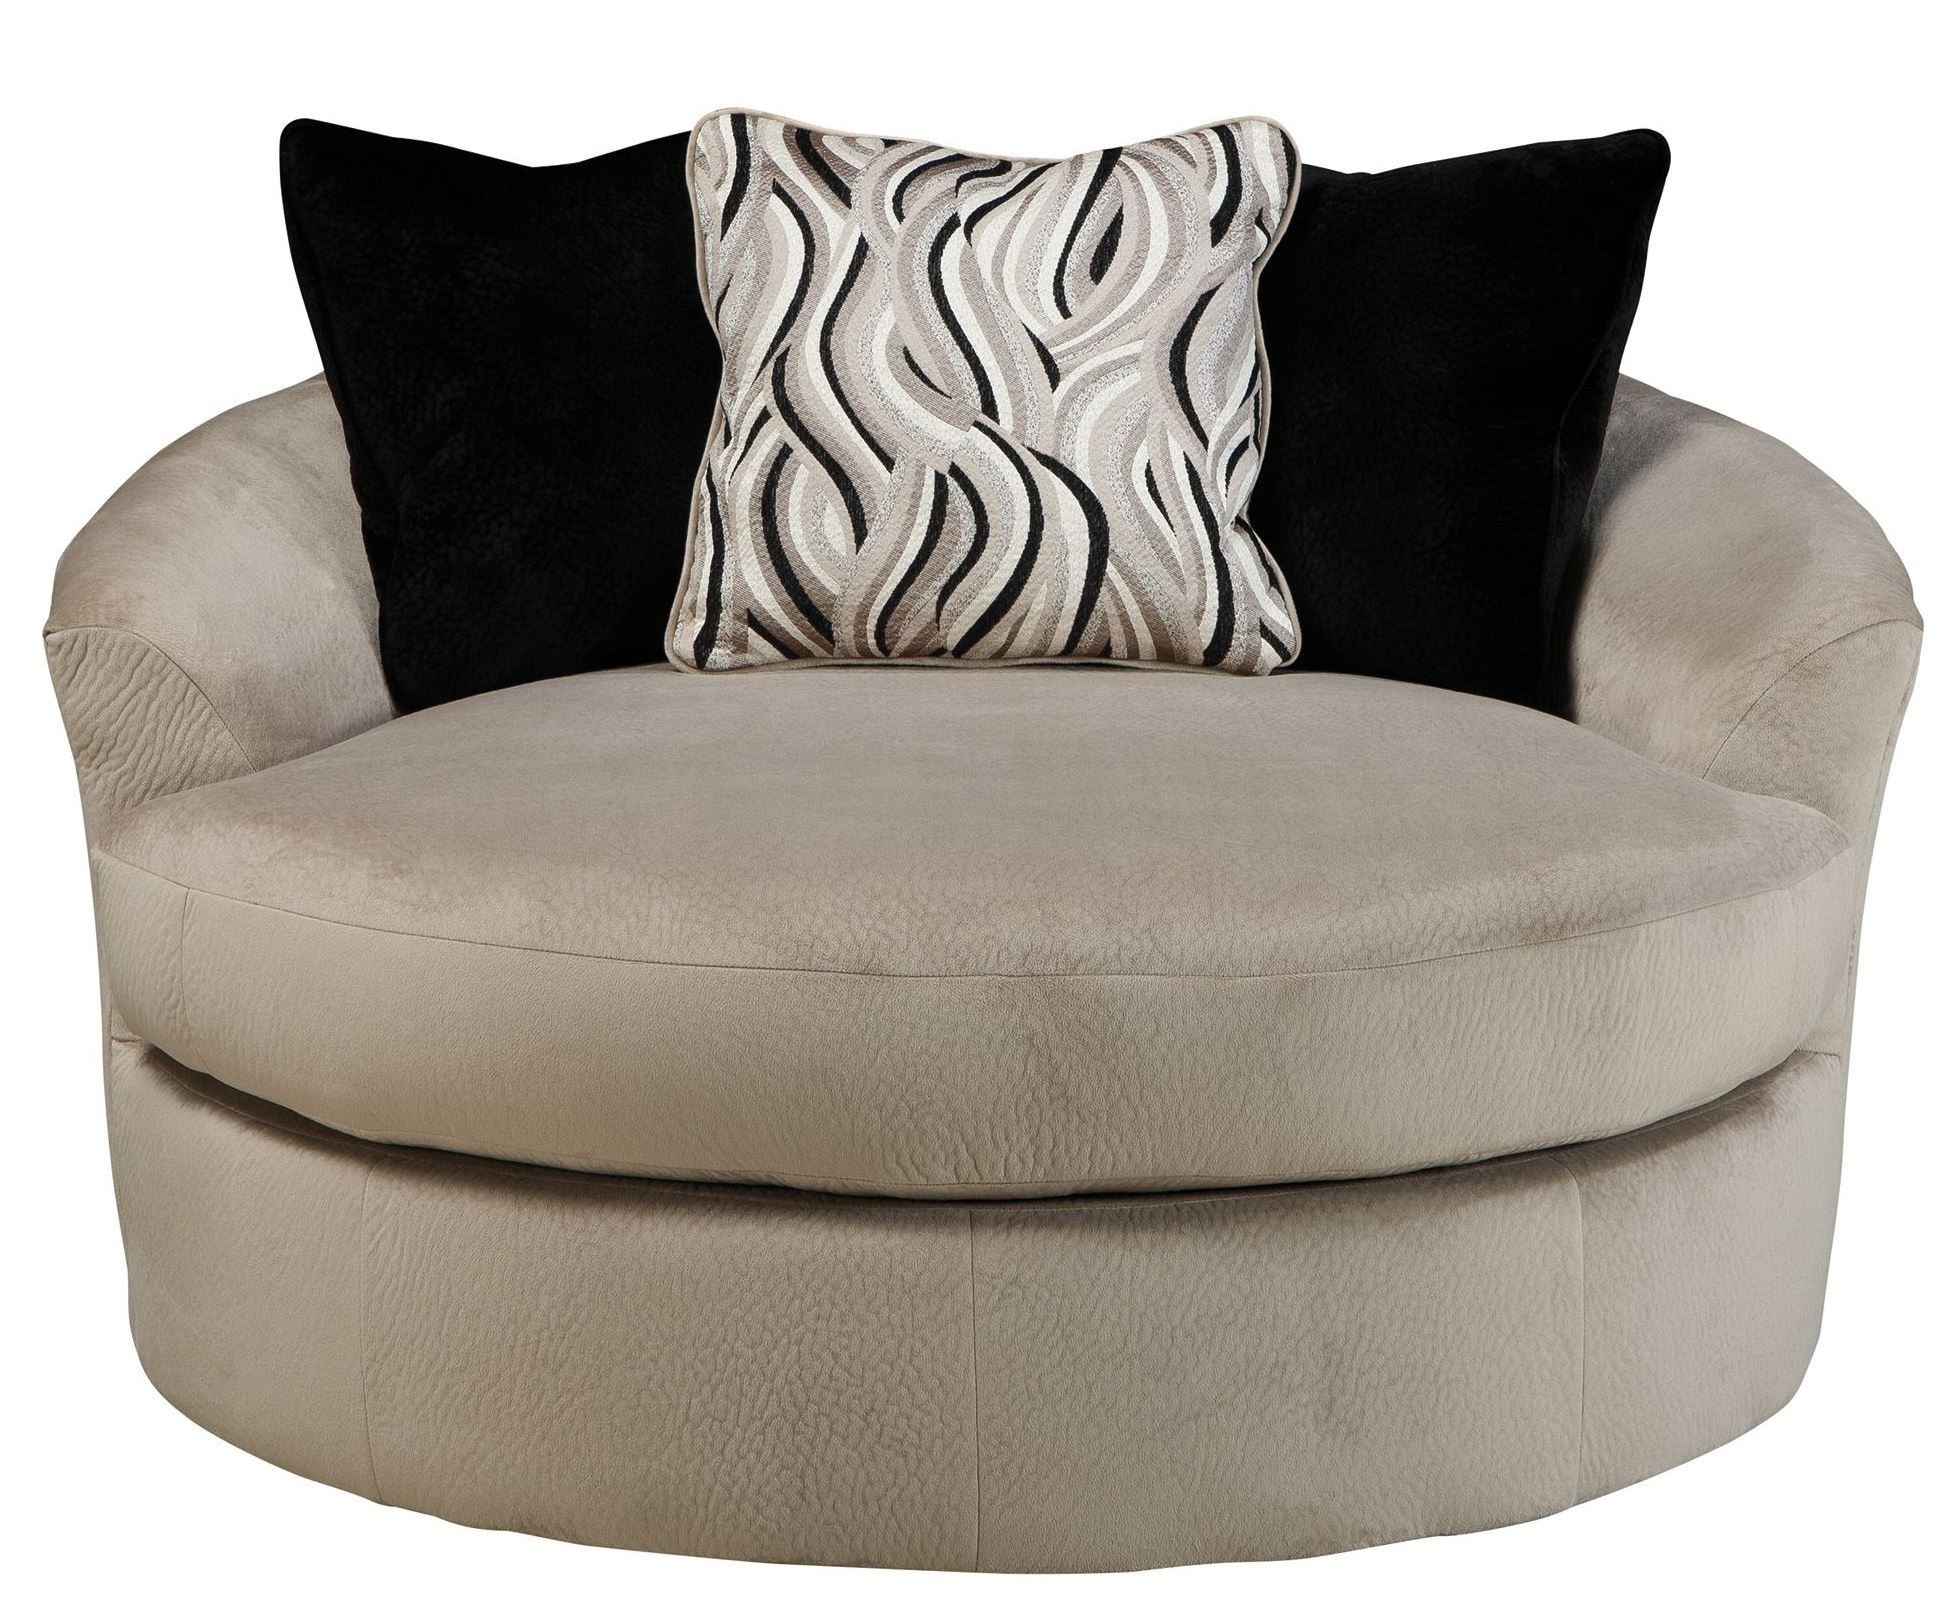 Outsized Swivel Accent Chair. Oversized Swivel Accent Chair